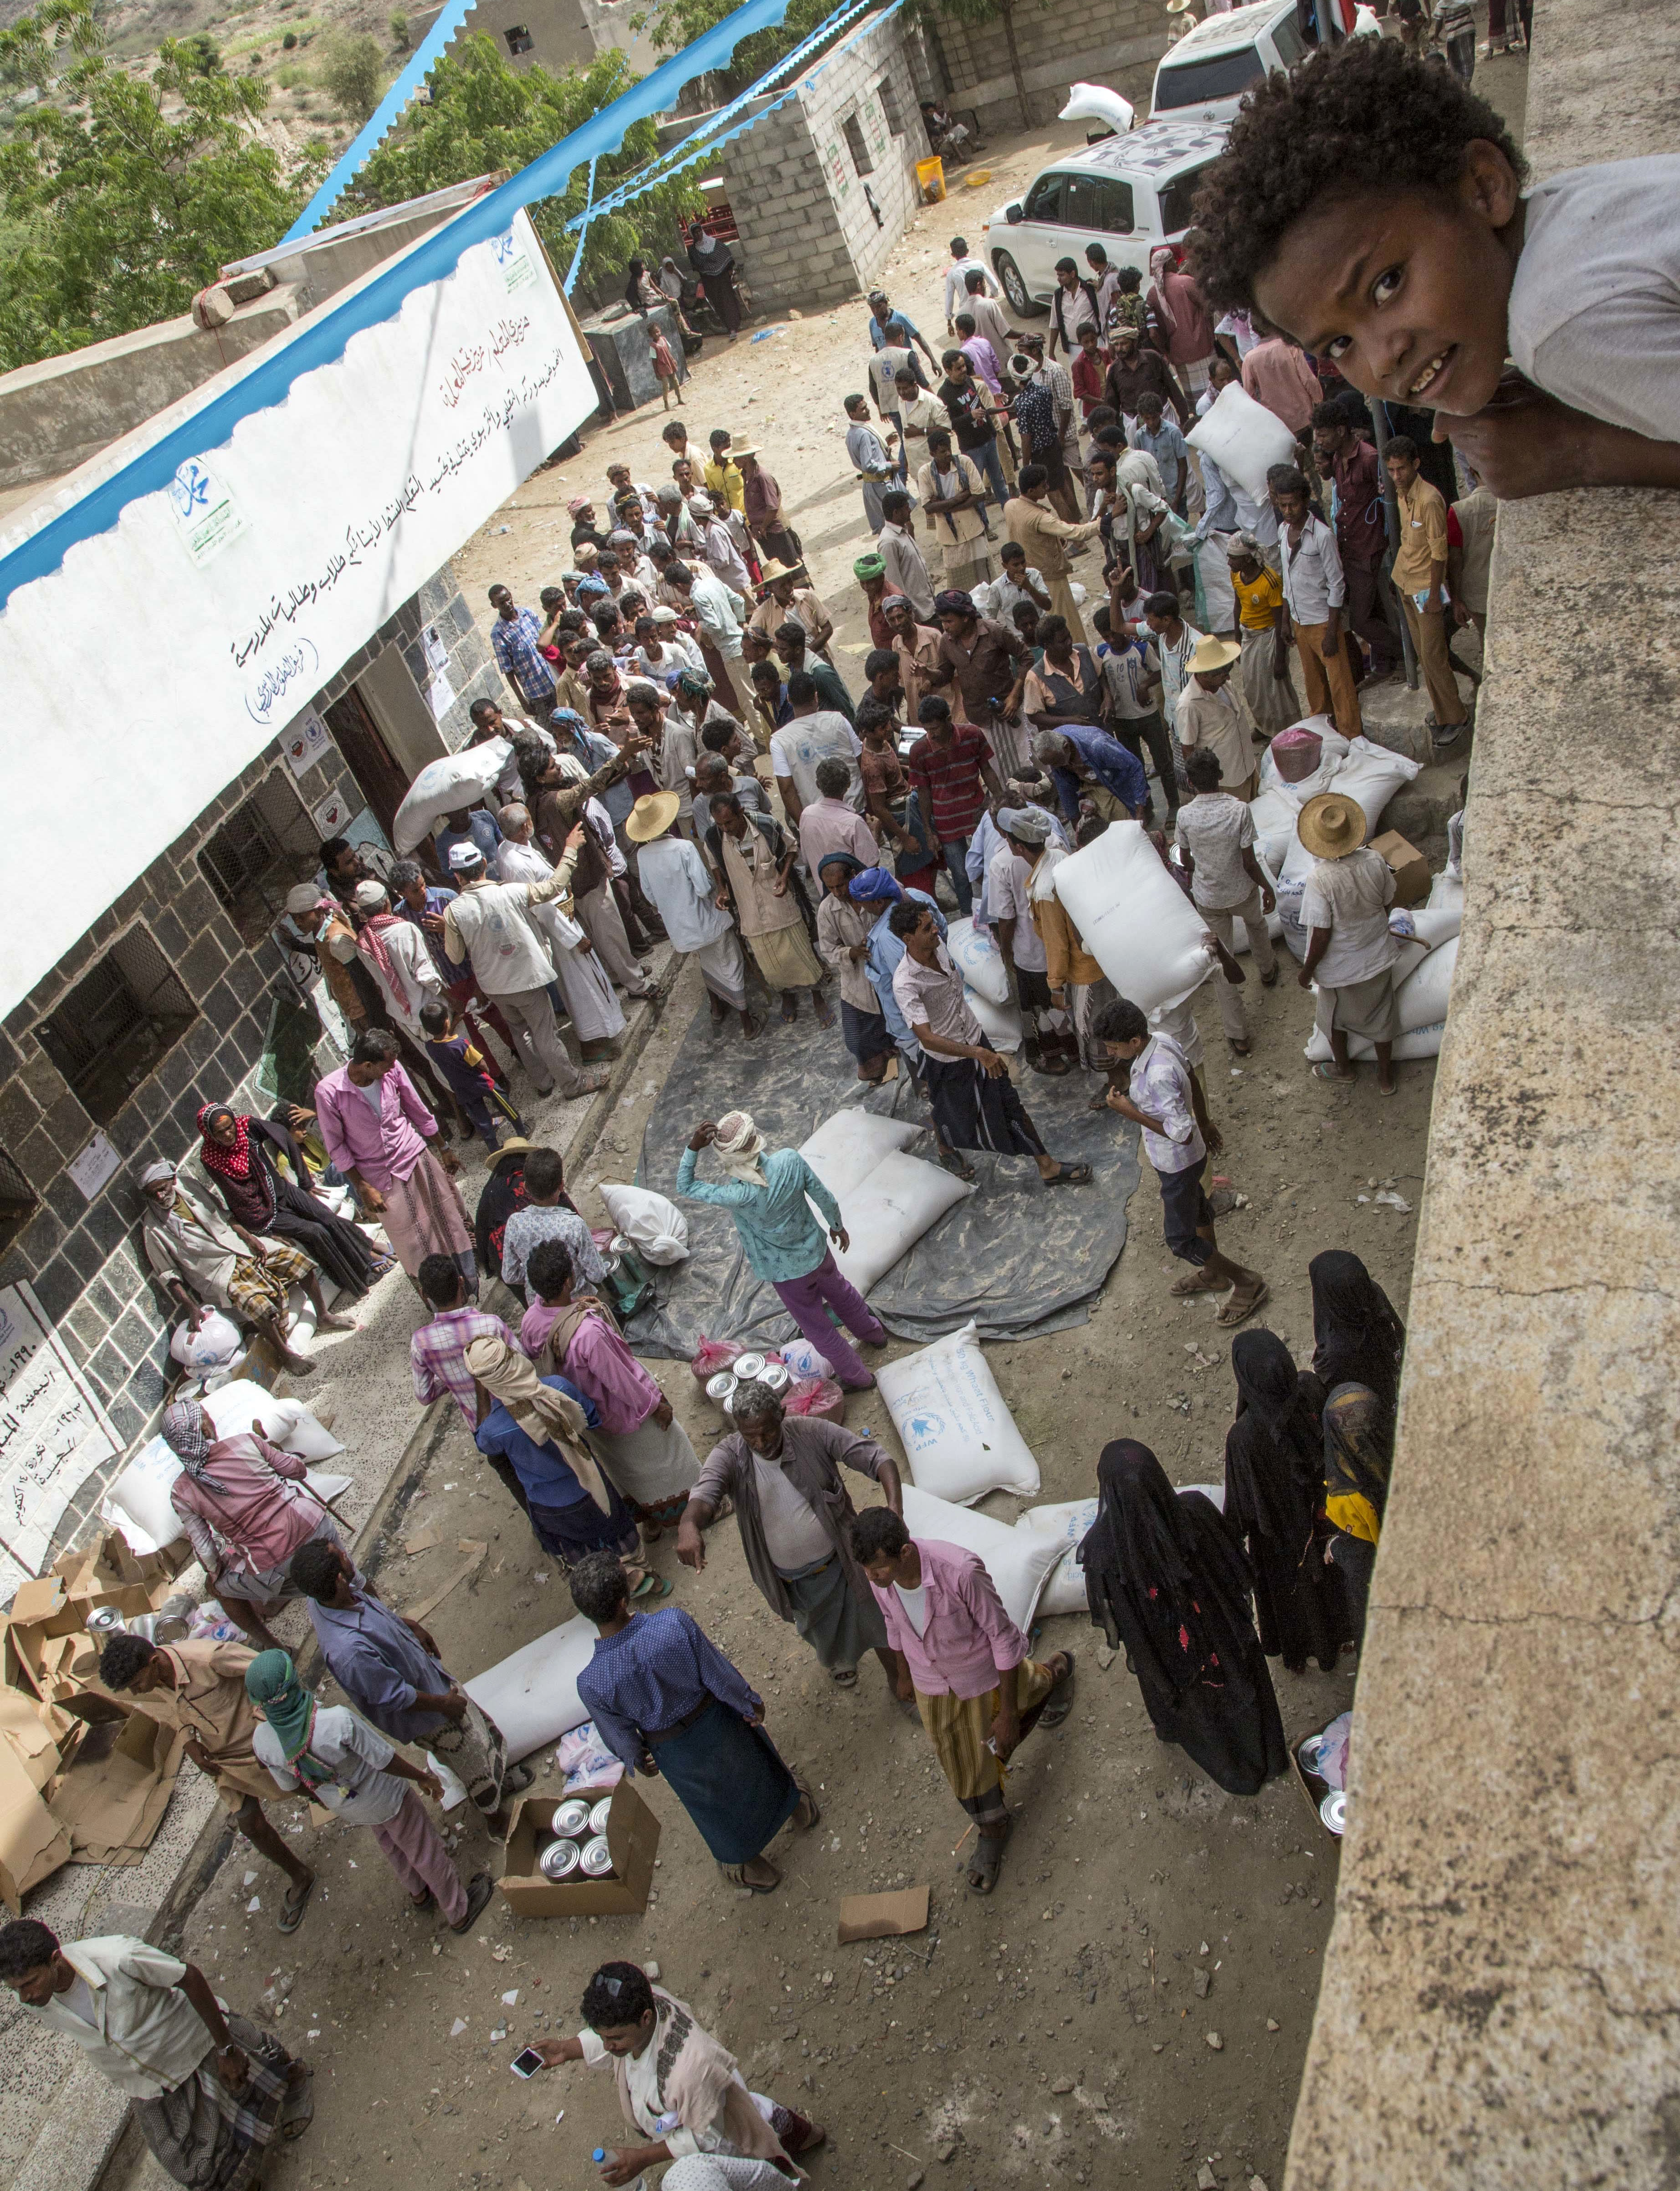 """This Nov. 16, 2018 photo shows food distribution by the WFP in Aslem, Yemen. The U.N. food agency said Thursday, Dec. 6, 2018 it is planning to rapidly scale up food distribution to help another 4 million people in Yemen over the next two months, more than a 50-percent increase in the number reached now, if access can be maintained in the poor, war-stricken country"""". (Marco Frattini/WFP via AP)"""